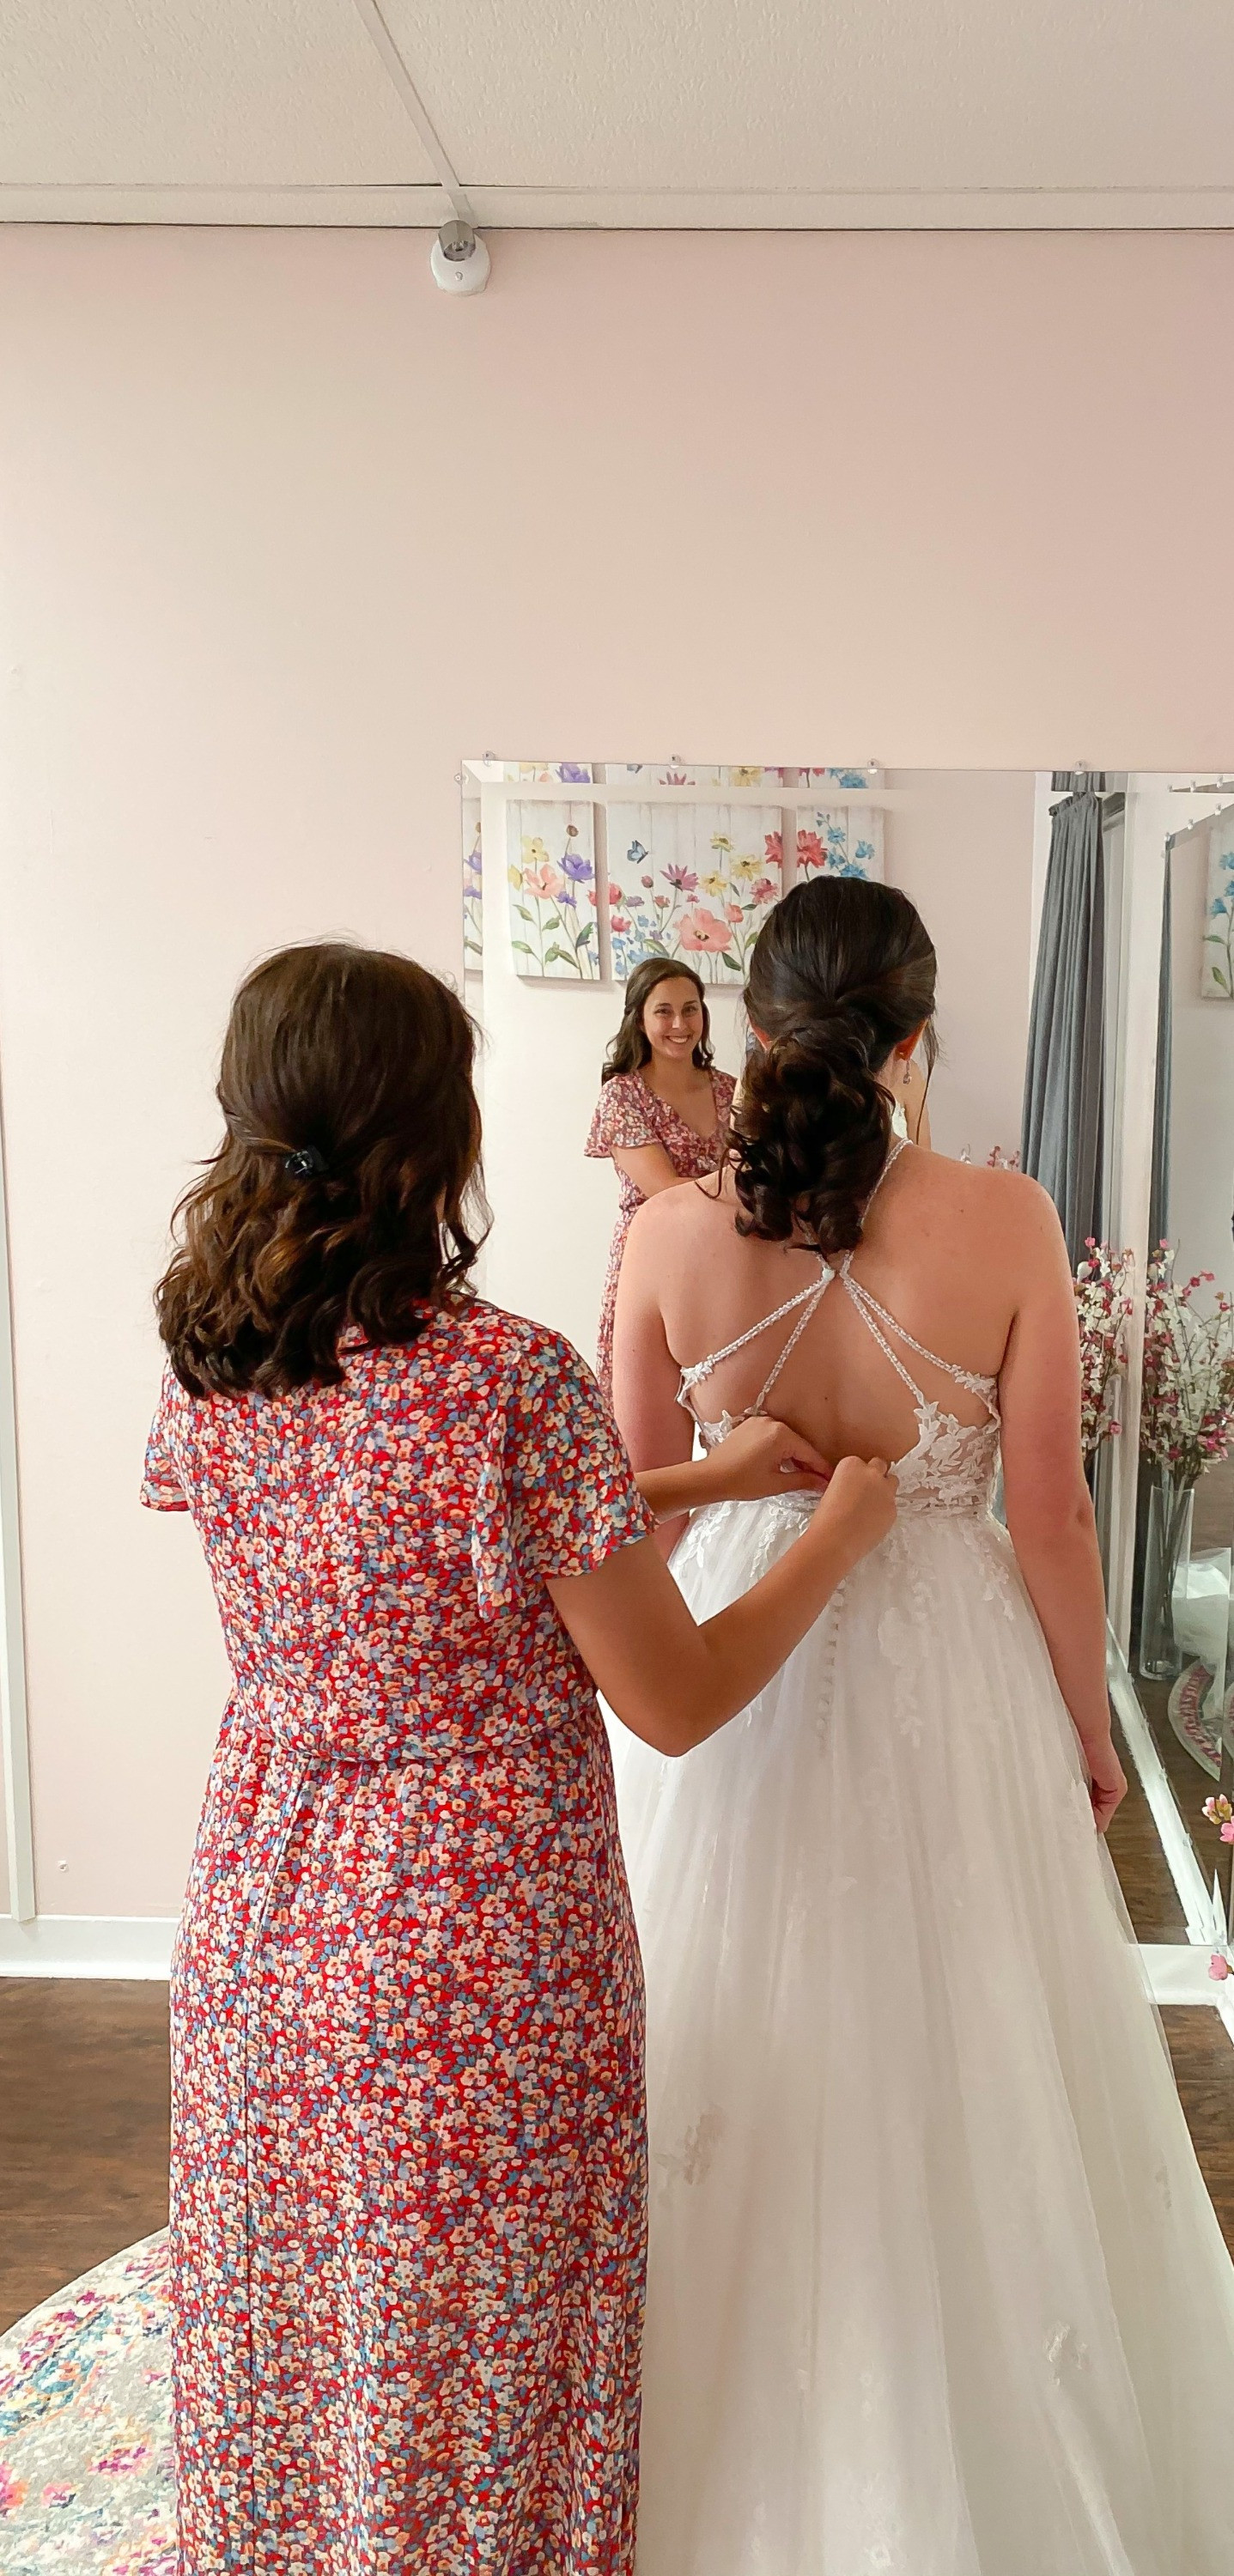 Follow-Up Bridal Appointment